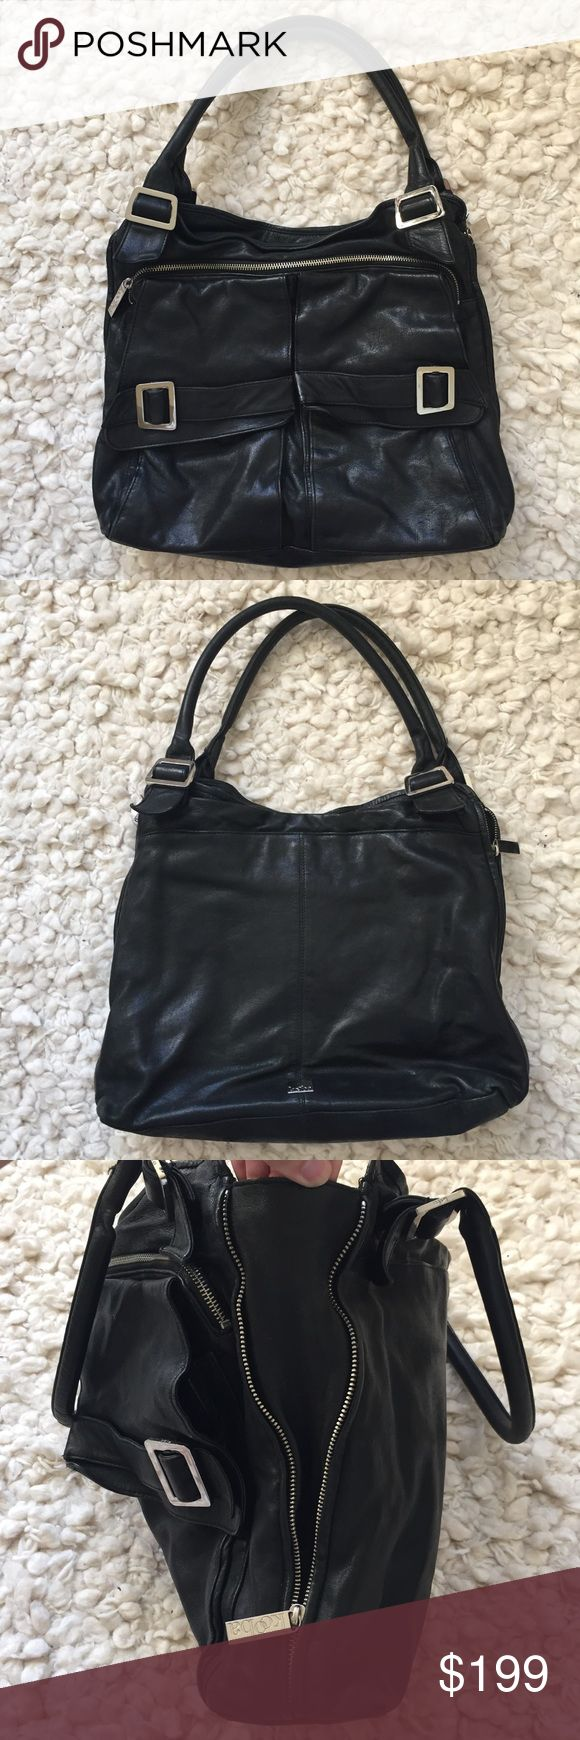 Kooba Large Black Leather Tote Great tote purchased at Bloomingdales. Great condition but for minor wear (see photos).  Perfect size for carrying laptop!  Large inner main compartment has 1 zipper pouch and 2 open pouches.  There are two other large size compartments - magnetic closure one on the back of the bag and a zipper one on the front.  Also 2 front magnetic flap pockets.  Functional zipper on exterior of each side allow for easy expansion.  Main compartment closes via magnetic…